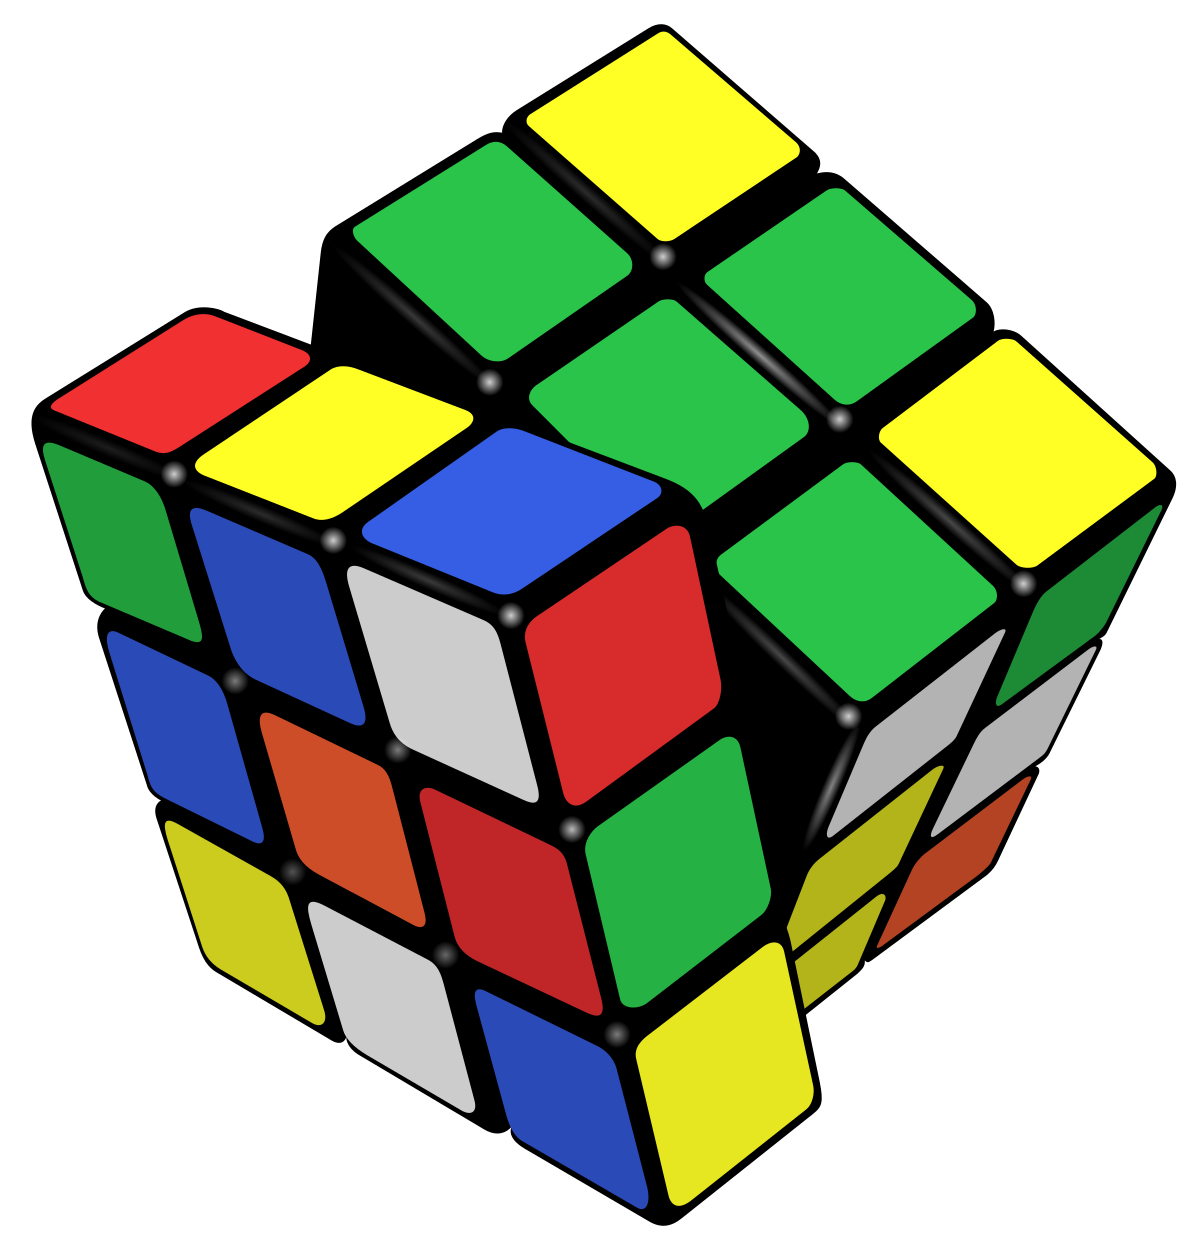 How to solve a 3x3 Rubik's Cube in a Minute?